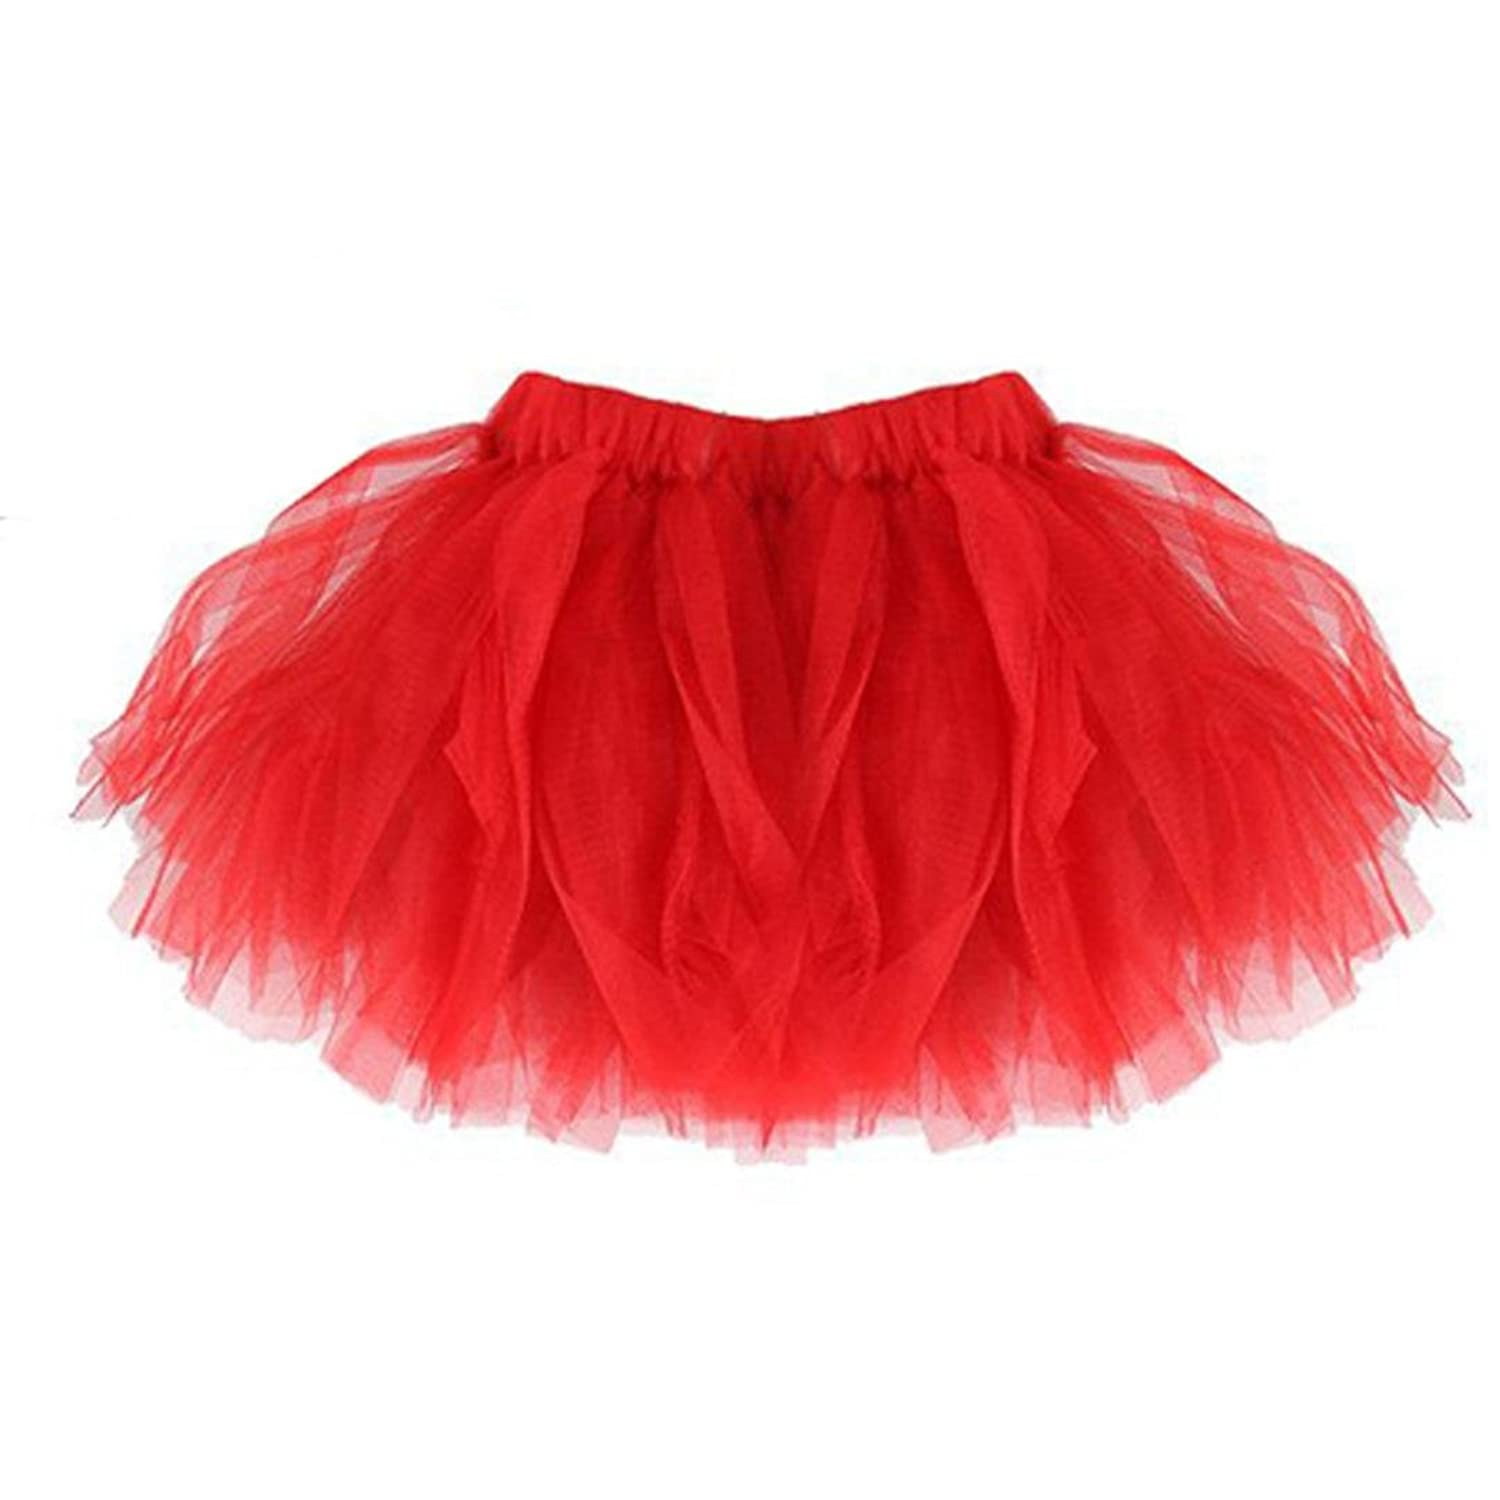 Yoyorule Little Girls colorful Lined Layered Ruffle Tutu Tiered Ballet Fancy Party Dance Skirt